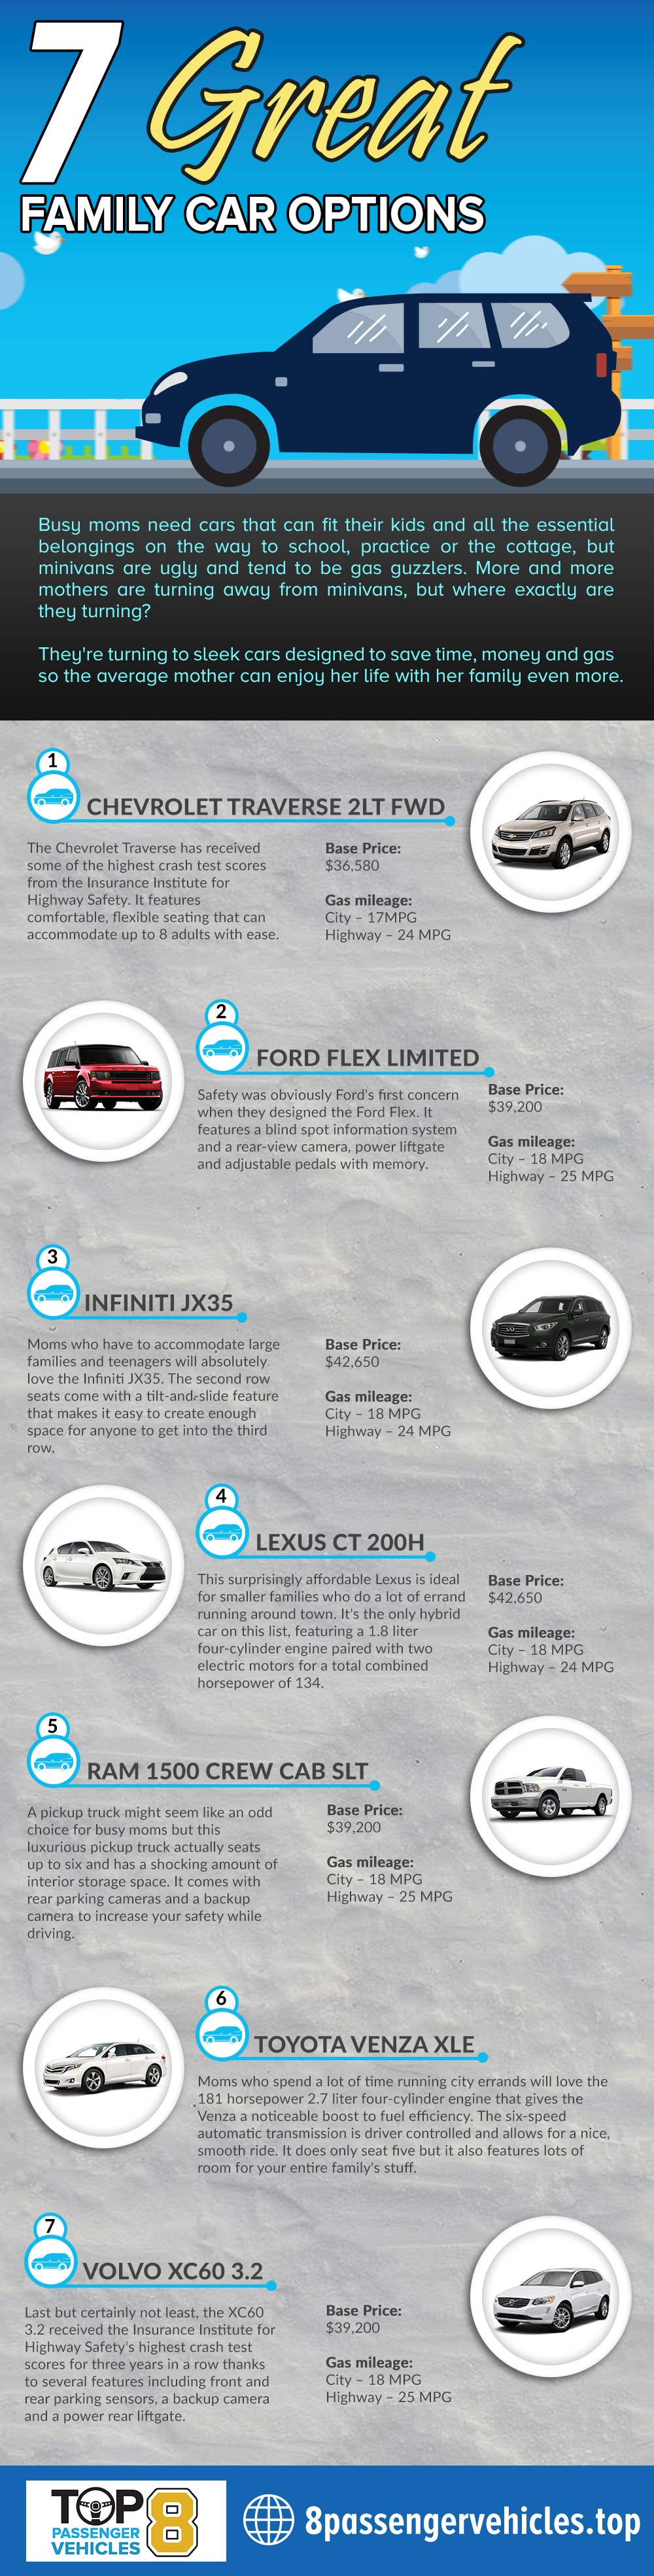 Family-Car-Options-infographic-lkrllc